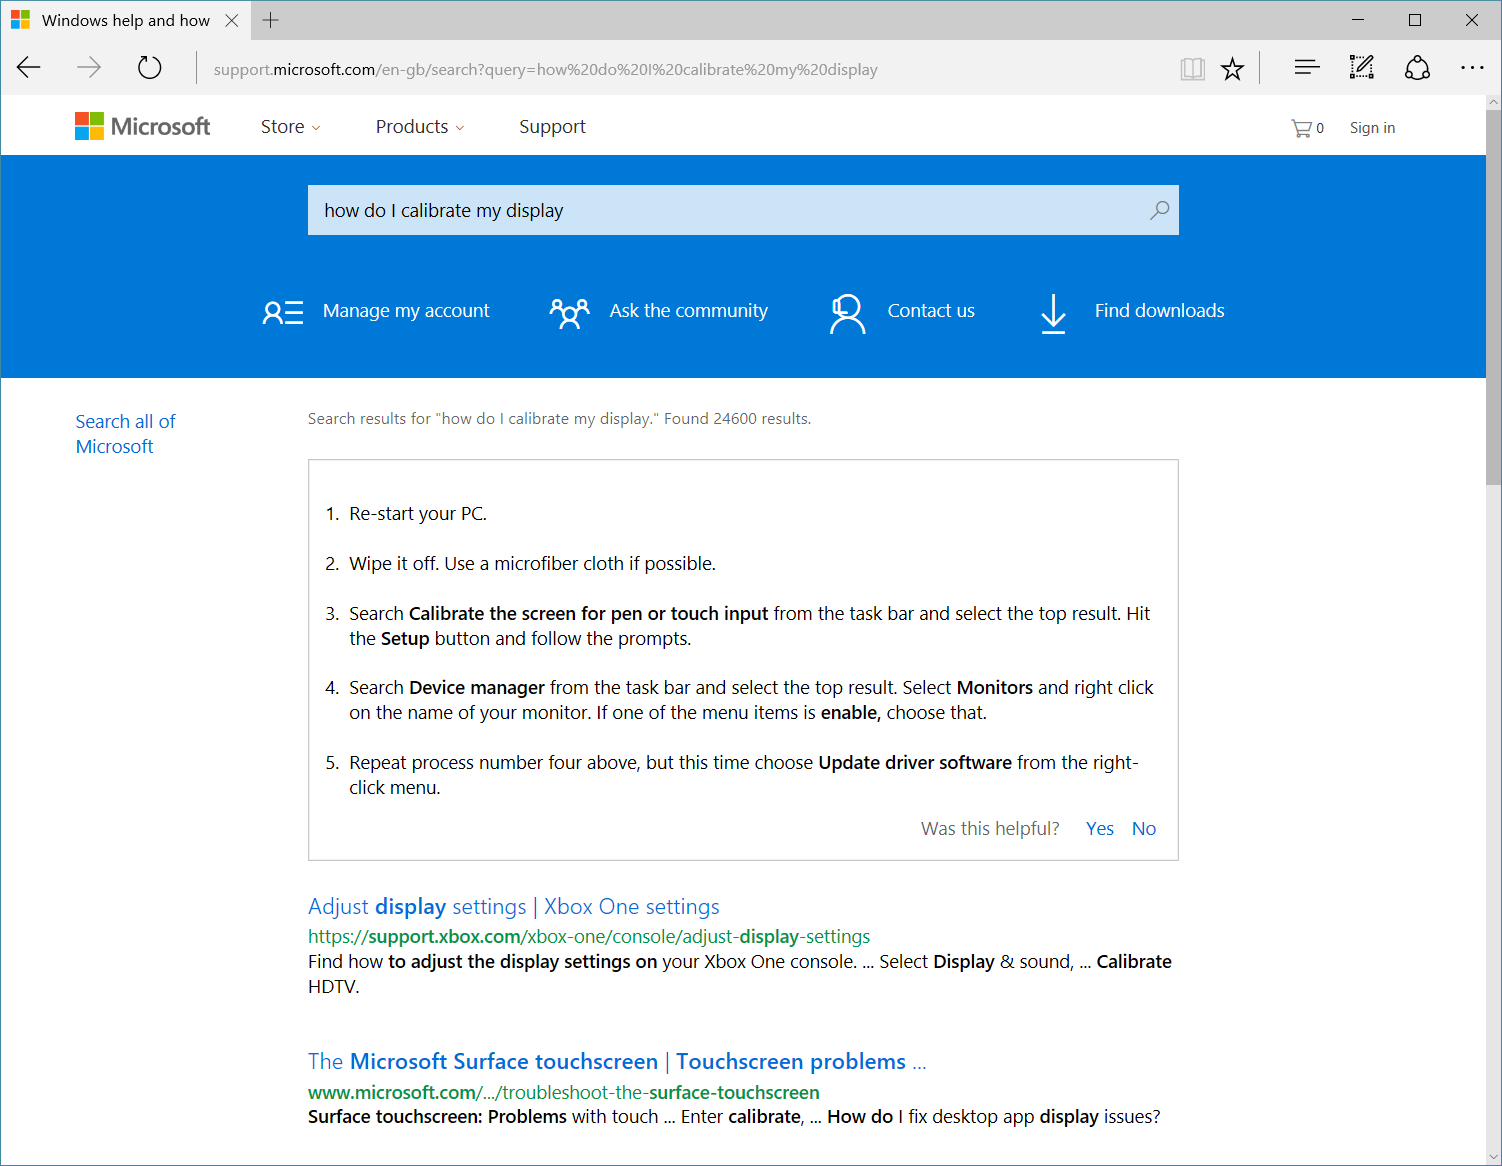 A search for 'How do I calibrate my display?' on the Windows 10 support home page